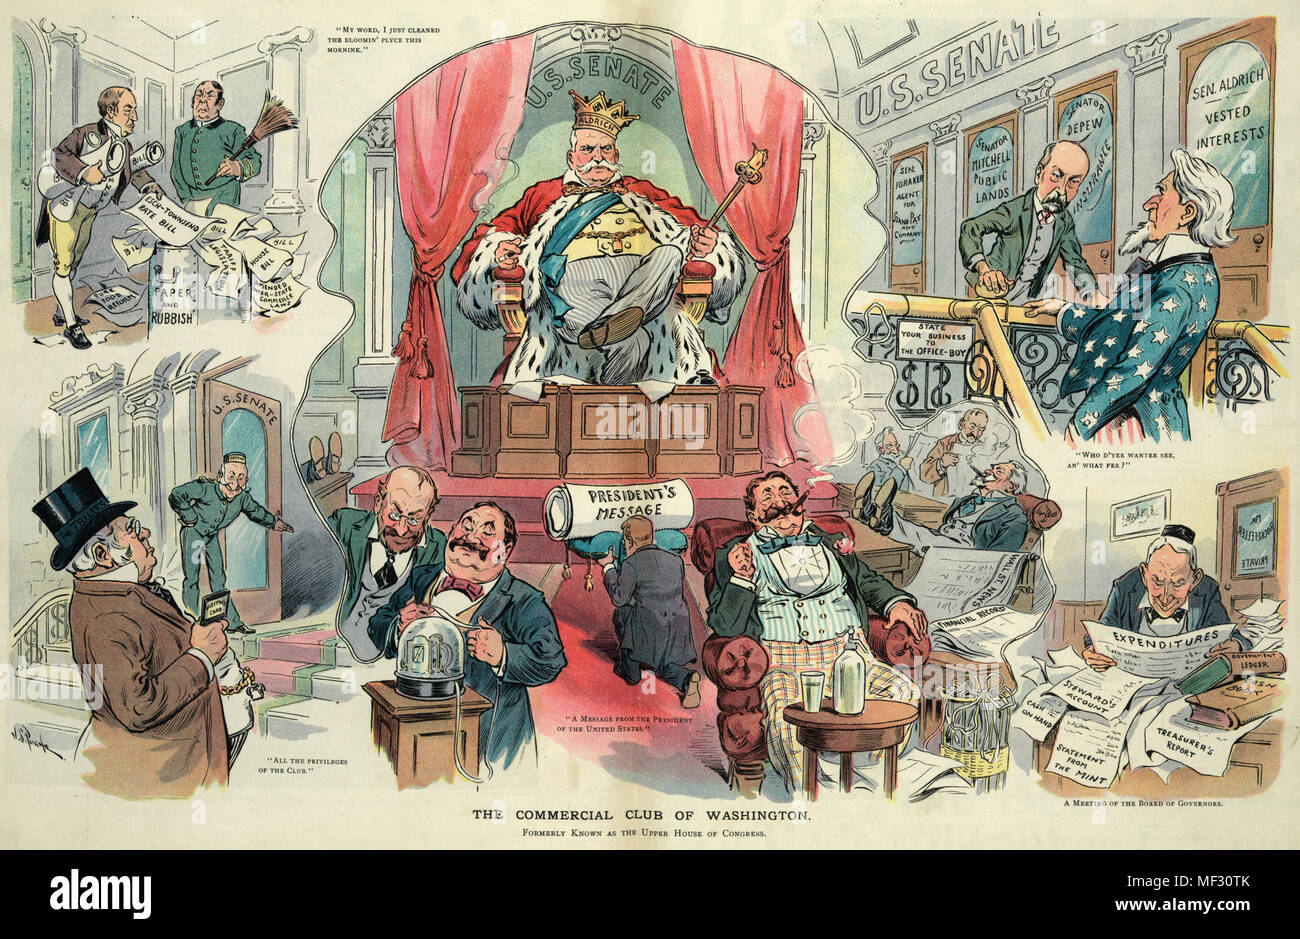 The commercial club of Washington -  Illustration shows Nelson Aldrich as king of the 'U.S. Senate' sitting on a throne with a diminutive Theodore Roosevelt kneeling before him bearing the 'President's Message', around them senators are reading ticker tape or enjoying the success of their investments. The surrounding vignettes show Chauncey M. Depew as a doorman welcoming a man labeled 'The Trusts' into the 'U.S. Senate', John D. Rockefeller sitting at a desk pouring over 'Reports' and 'Expenditures', Charles W. Fairbanks as an office boy stopping Uncle Sam at the top of the stairs demanding w - Stock Image